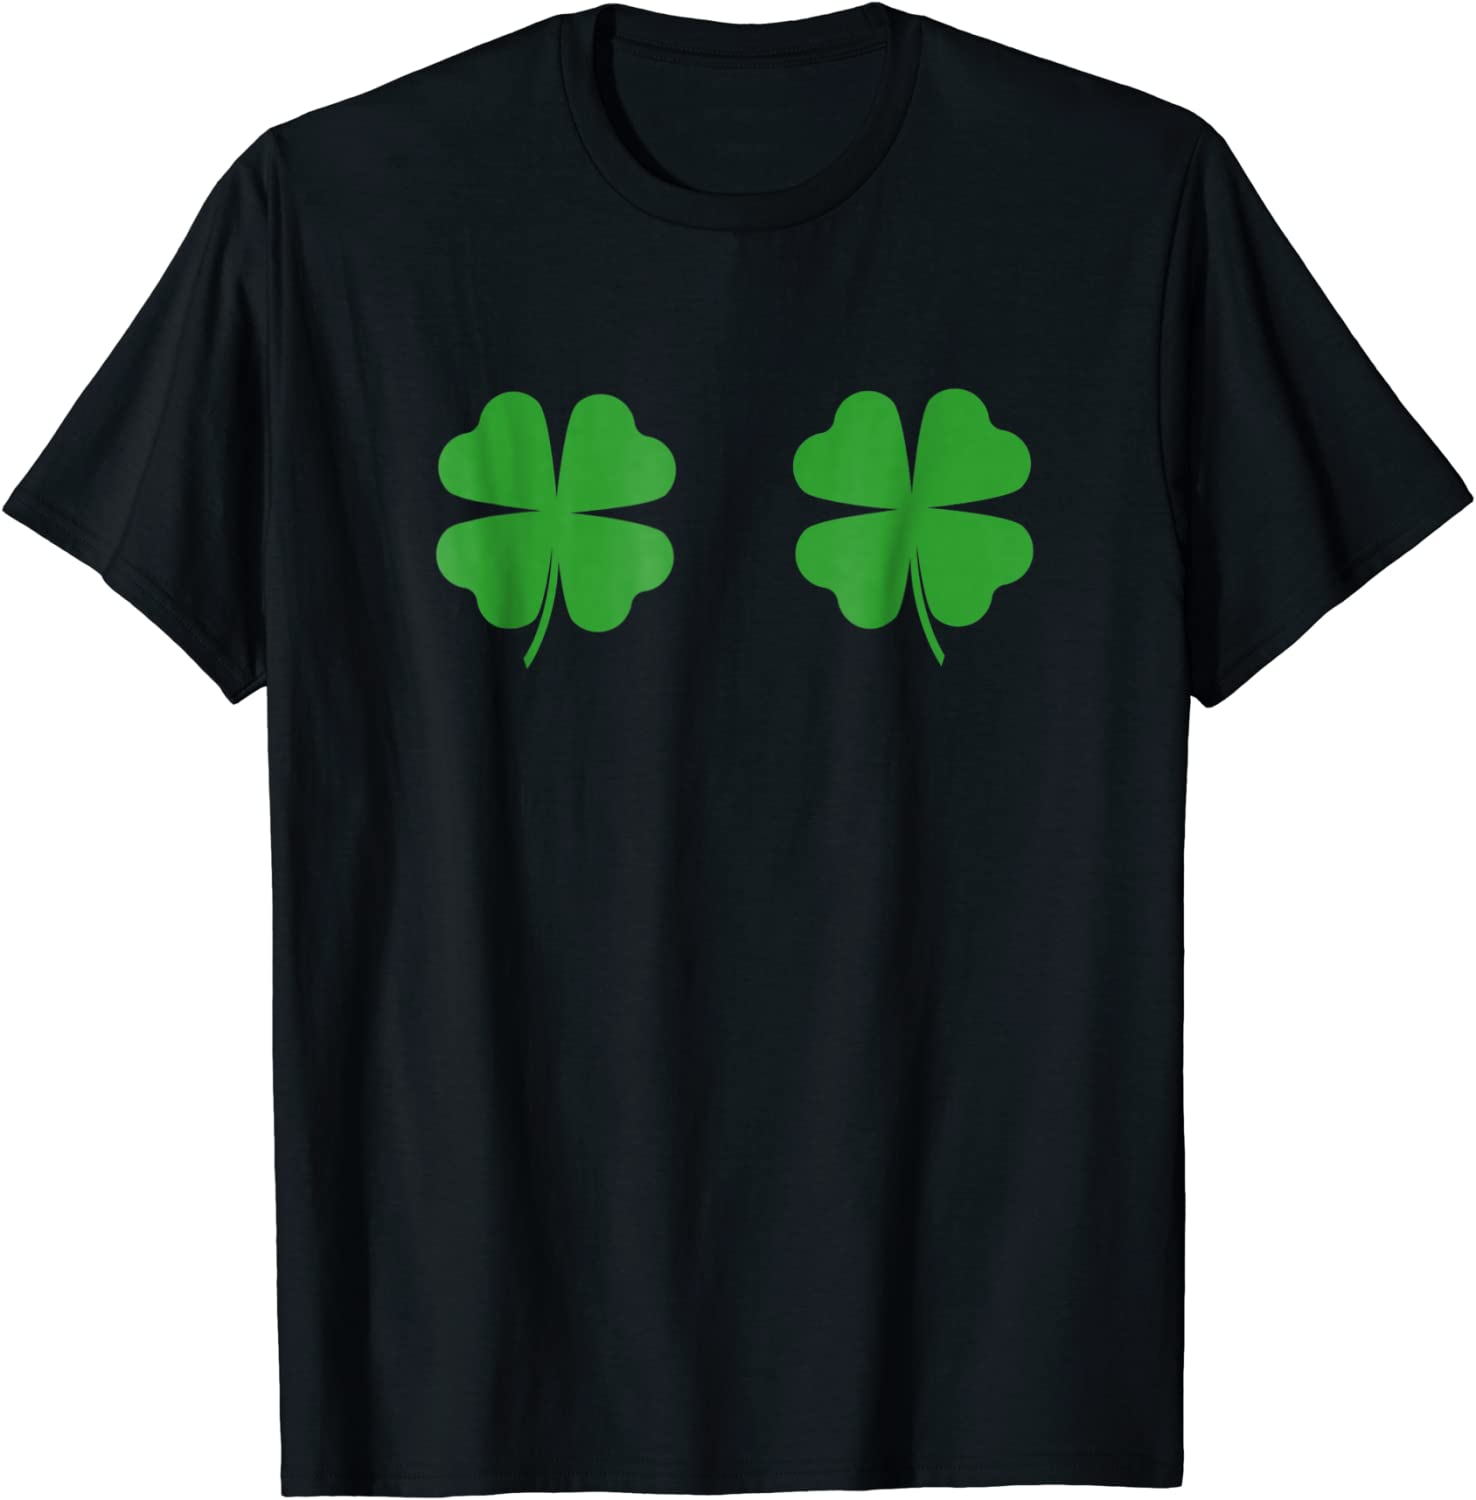 St Patrick/'s Day Women Tee Patrick/'s Day Party Shirt Shamrock Shirt St Paddy/'s Day Shirt St Patrick/'s Gift One  Lucky Girl Shirt